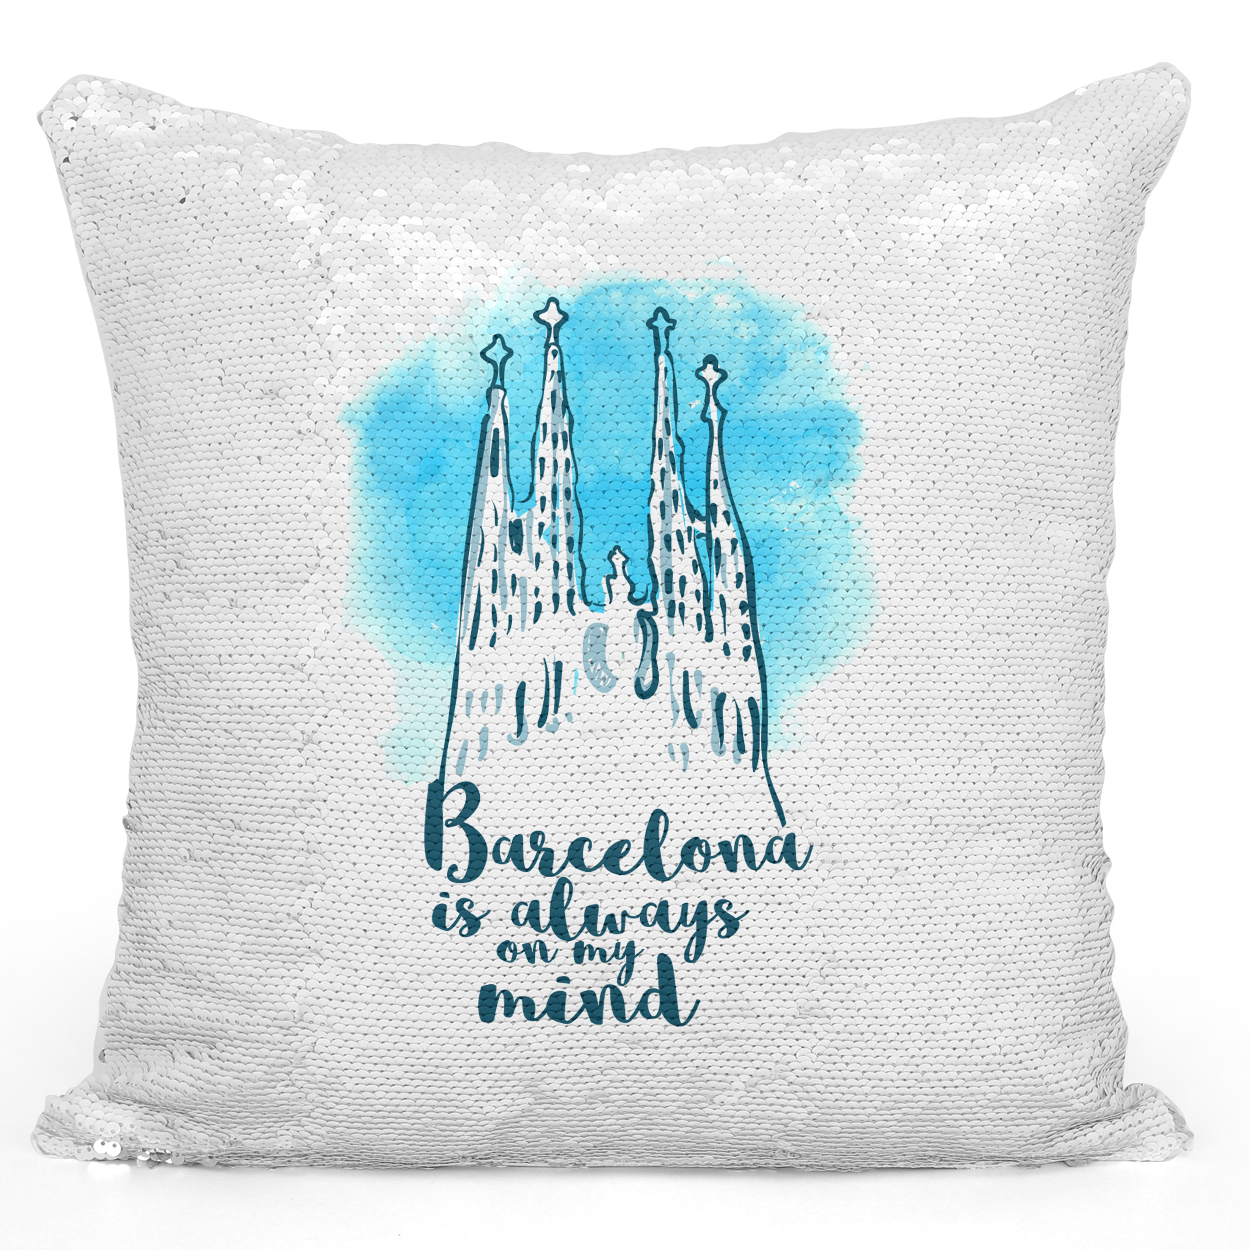 Sequin Pillow Magic Mermaid Throw Pillow Barcelona Is Always On My Mind Famous World Destination Vacation Pillow - Premium 100% Polyester 16 x 16 inch Square Modern Livingroom Decorative Pillow Loud Universe